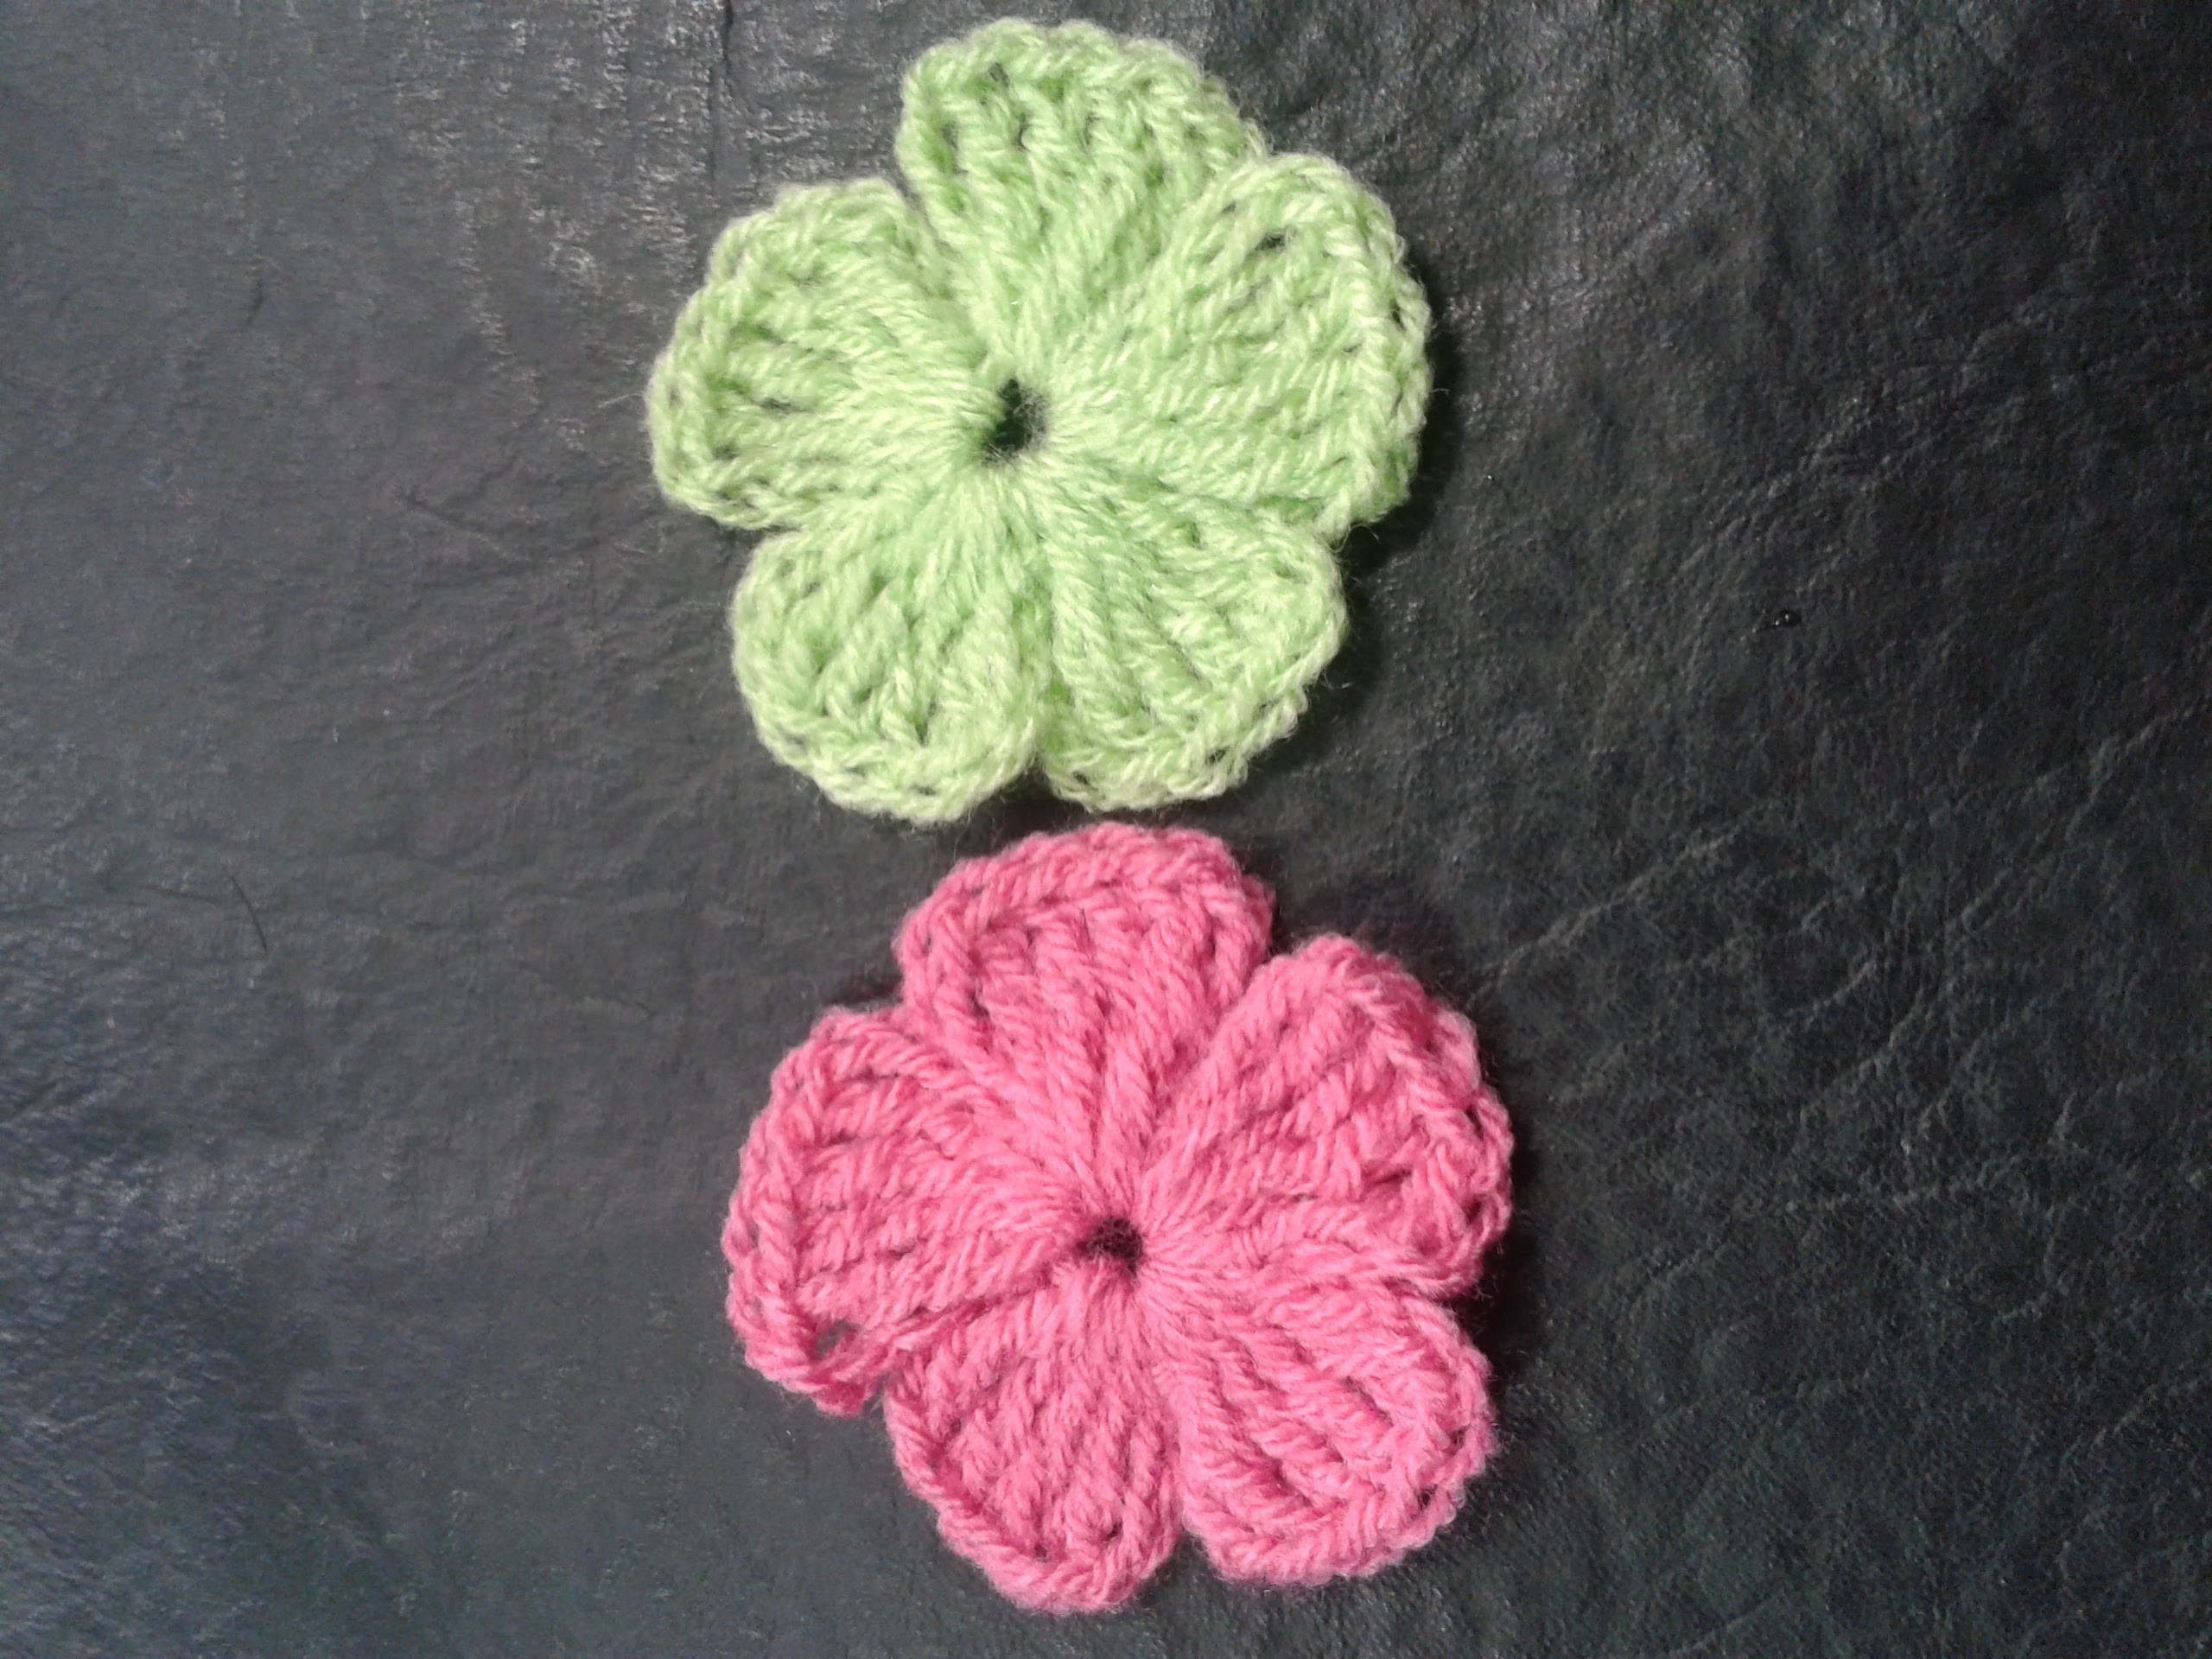 Como tejer flores de 5 petalos a crochet muy facil!.How to make flowers of 5 petals woven easy!